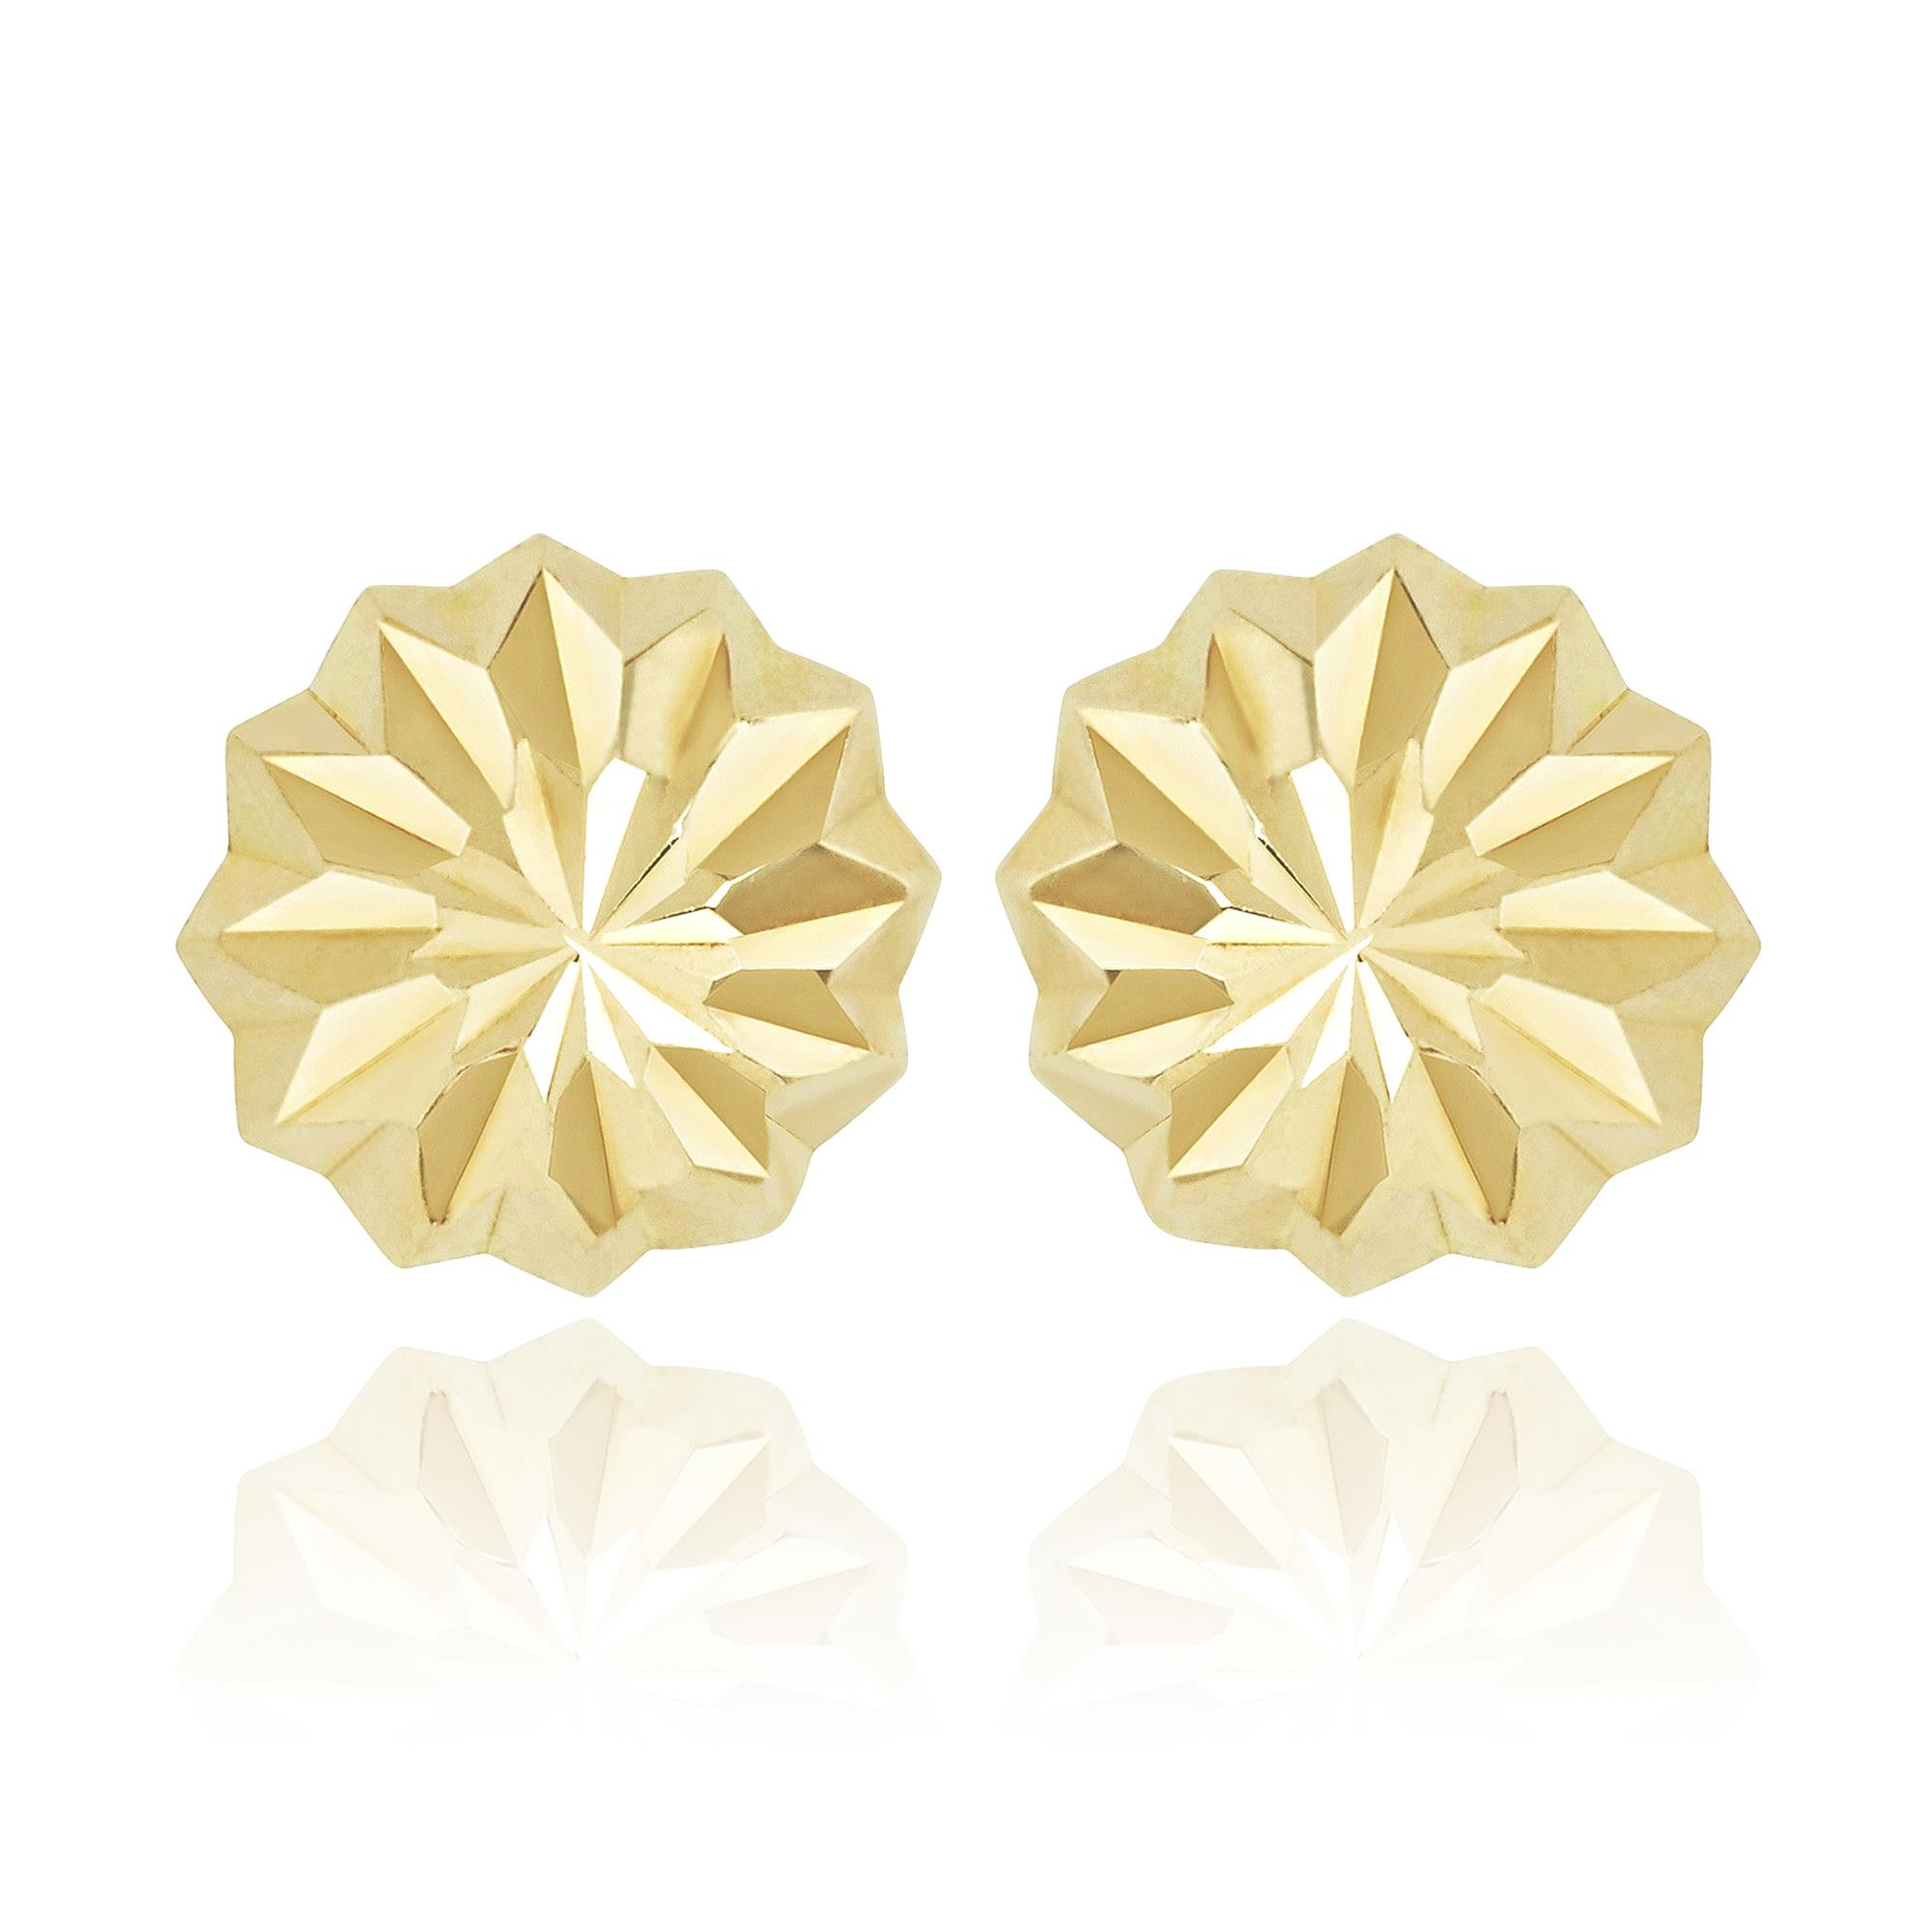 27d044067 18ct Yellow Gold Faceted Dome Stud Earrings | Pravins Jewellers